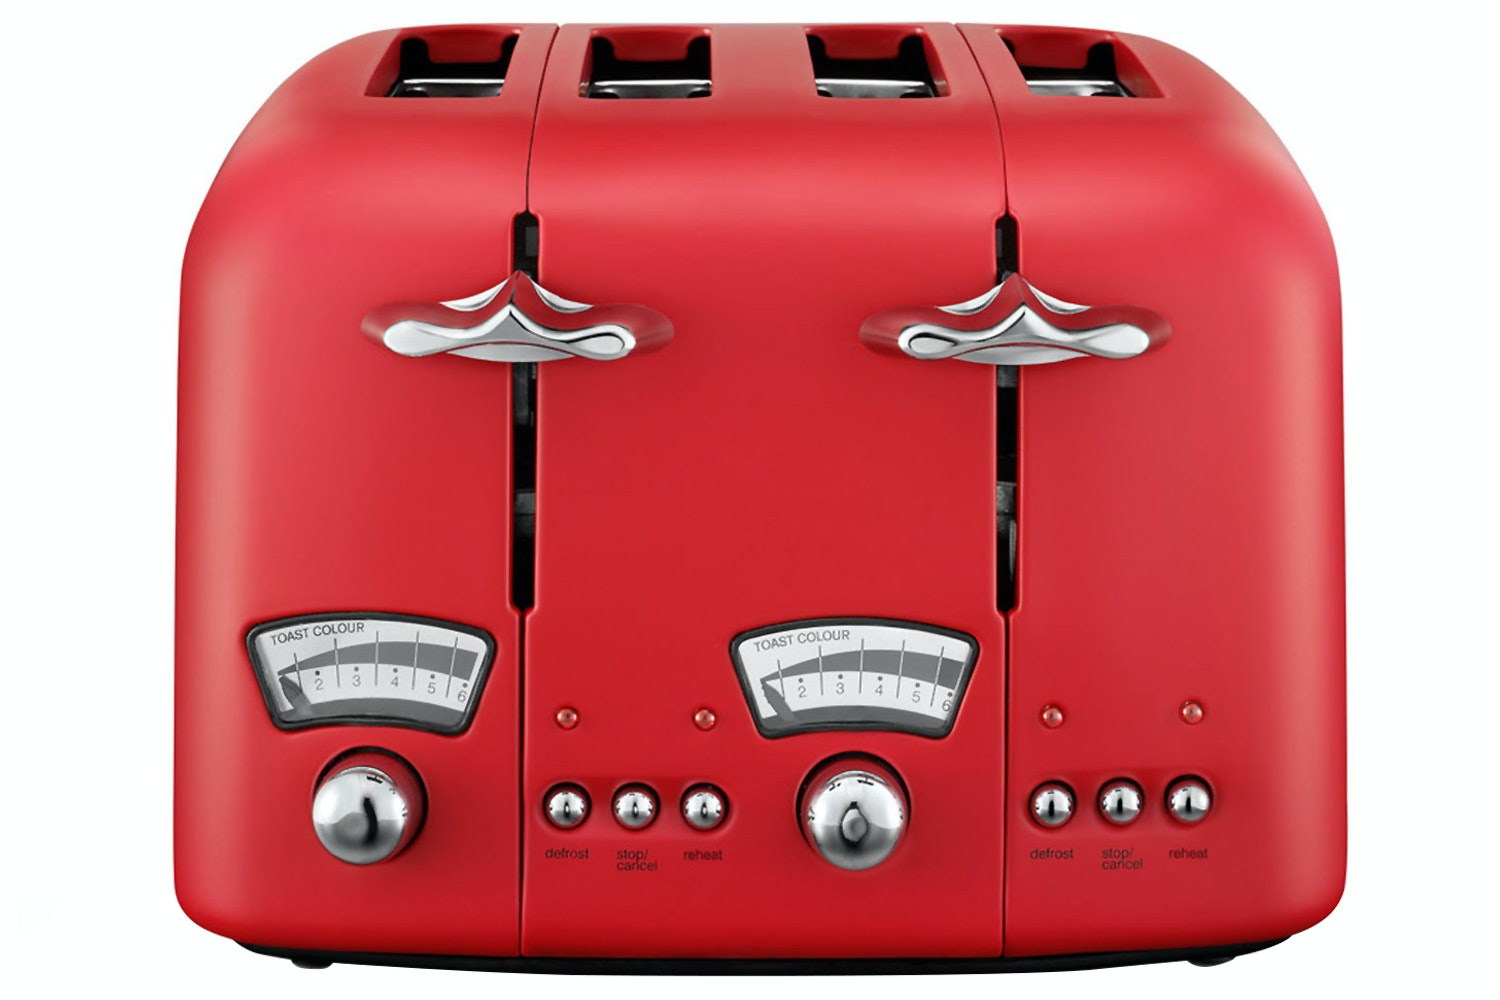 Delonghi Argento 4 Slice Toaster | Red